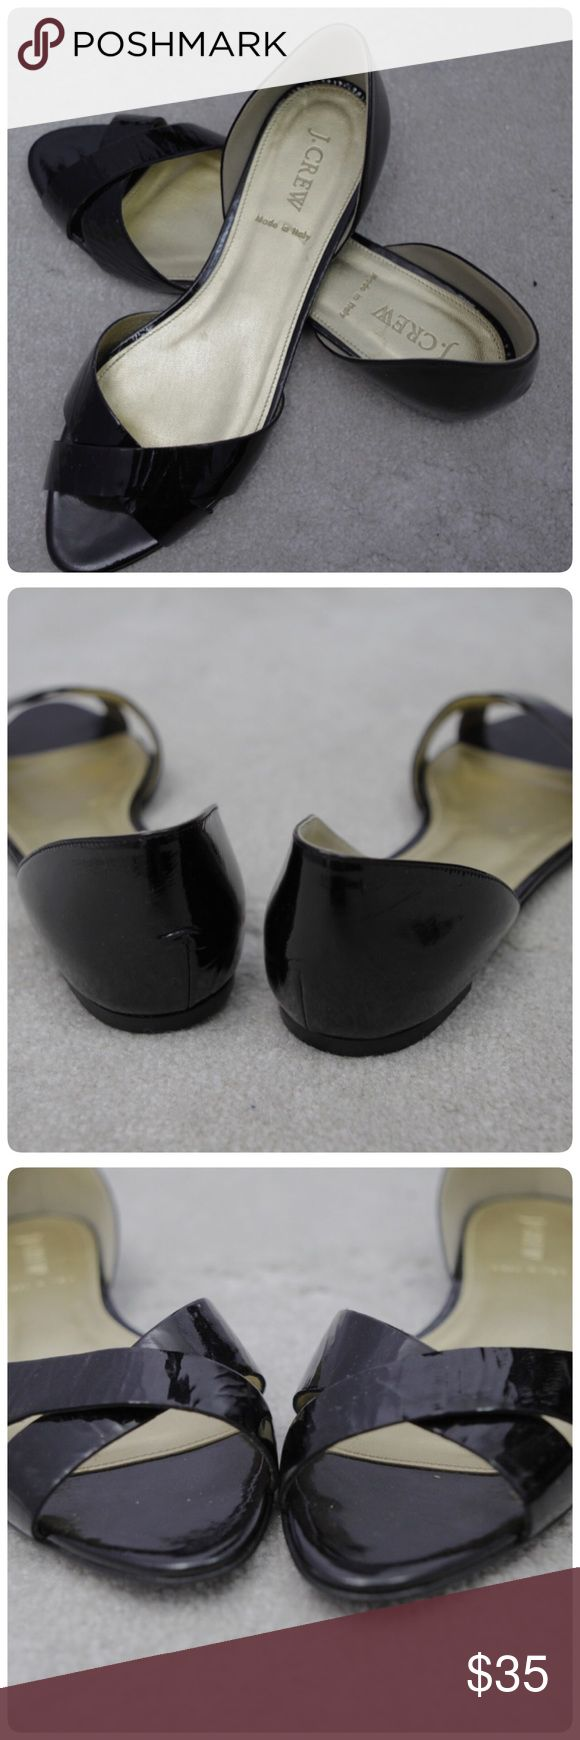 Brand New JCrew Black Flats Open Toe Brand new J.Crew open toe flats size 8.5  This does not have an original box. Will be mailed with or without shoes box J.Crew Factory Shoes Flats & Loafers